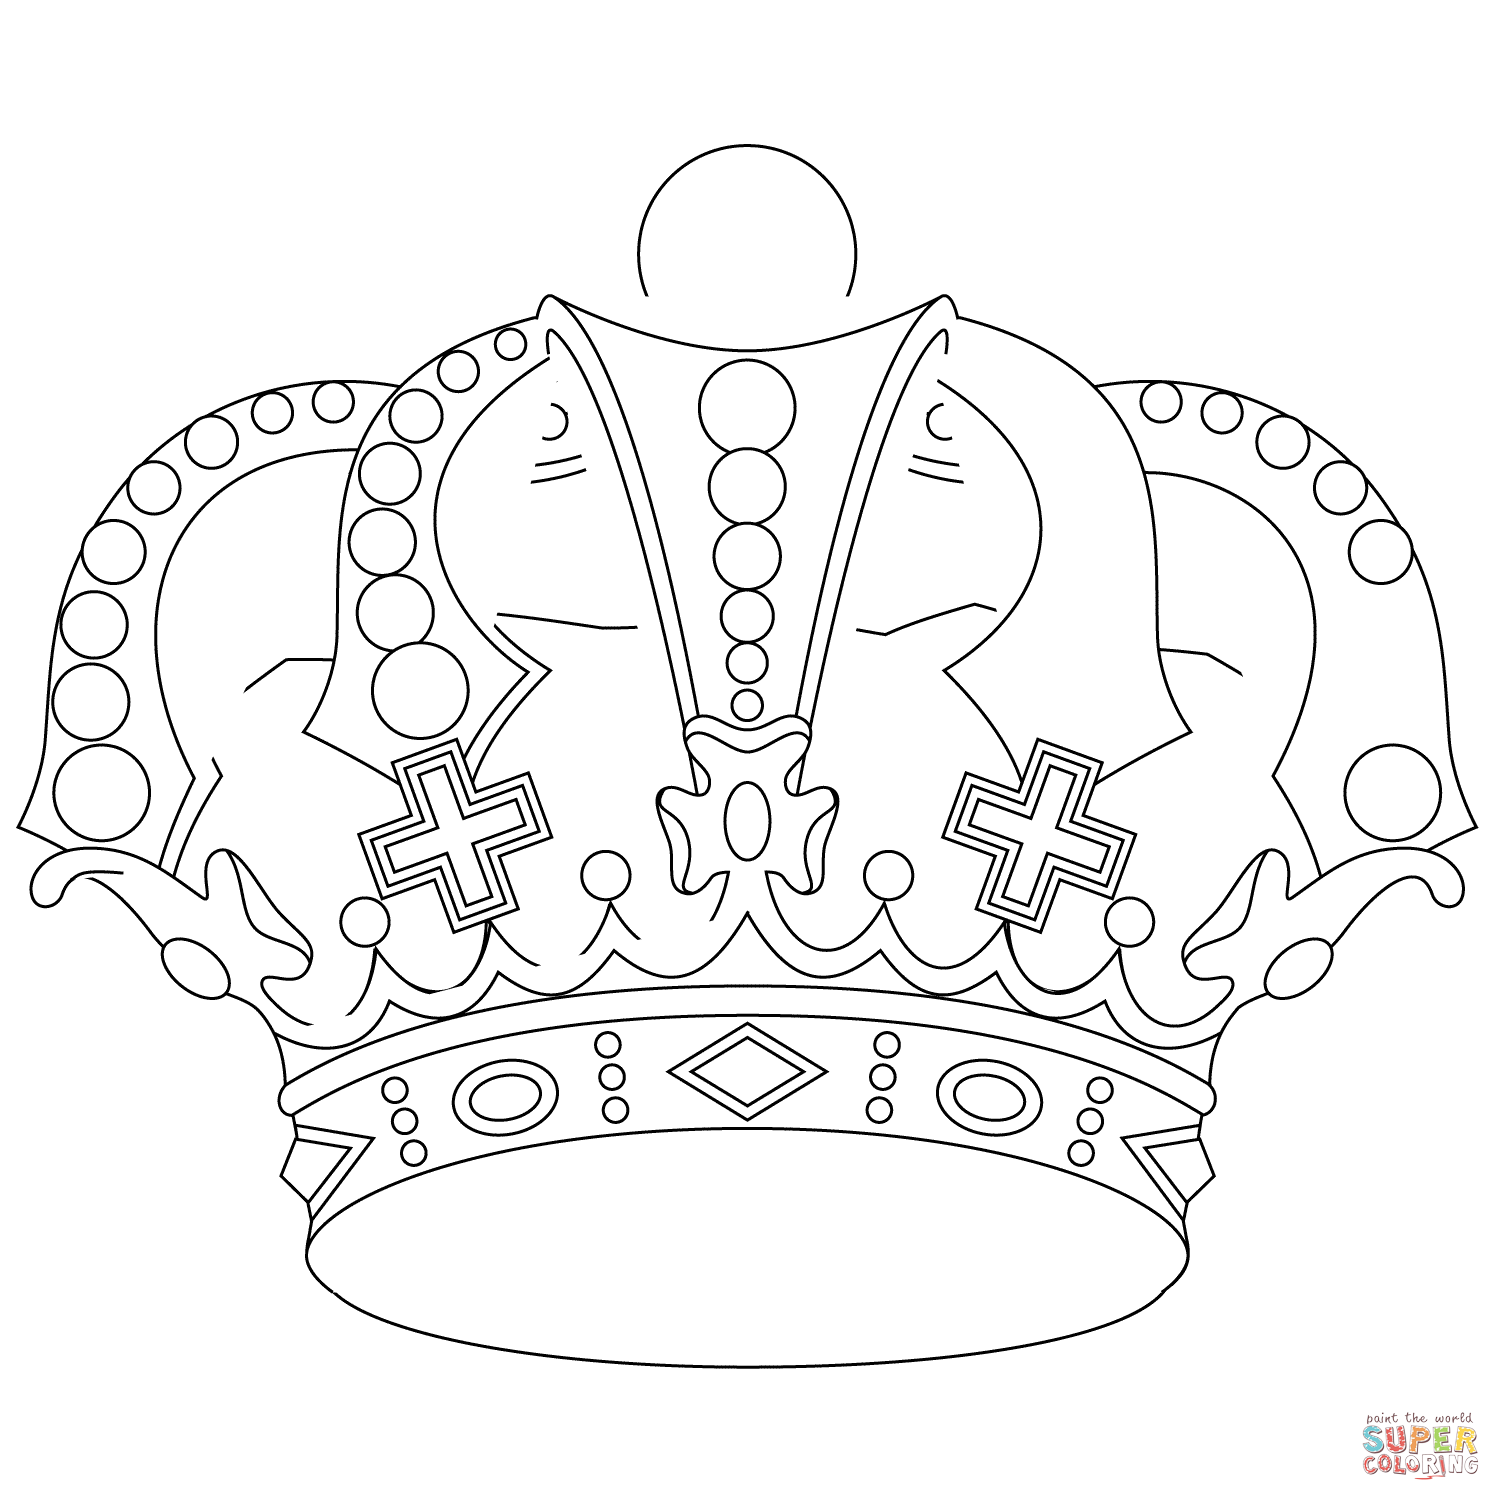 king crown coloring page crown coloring pages to print simple birthday princess king crown coloring page